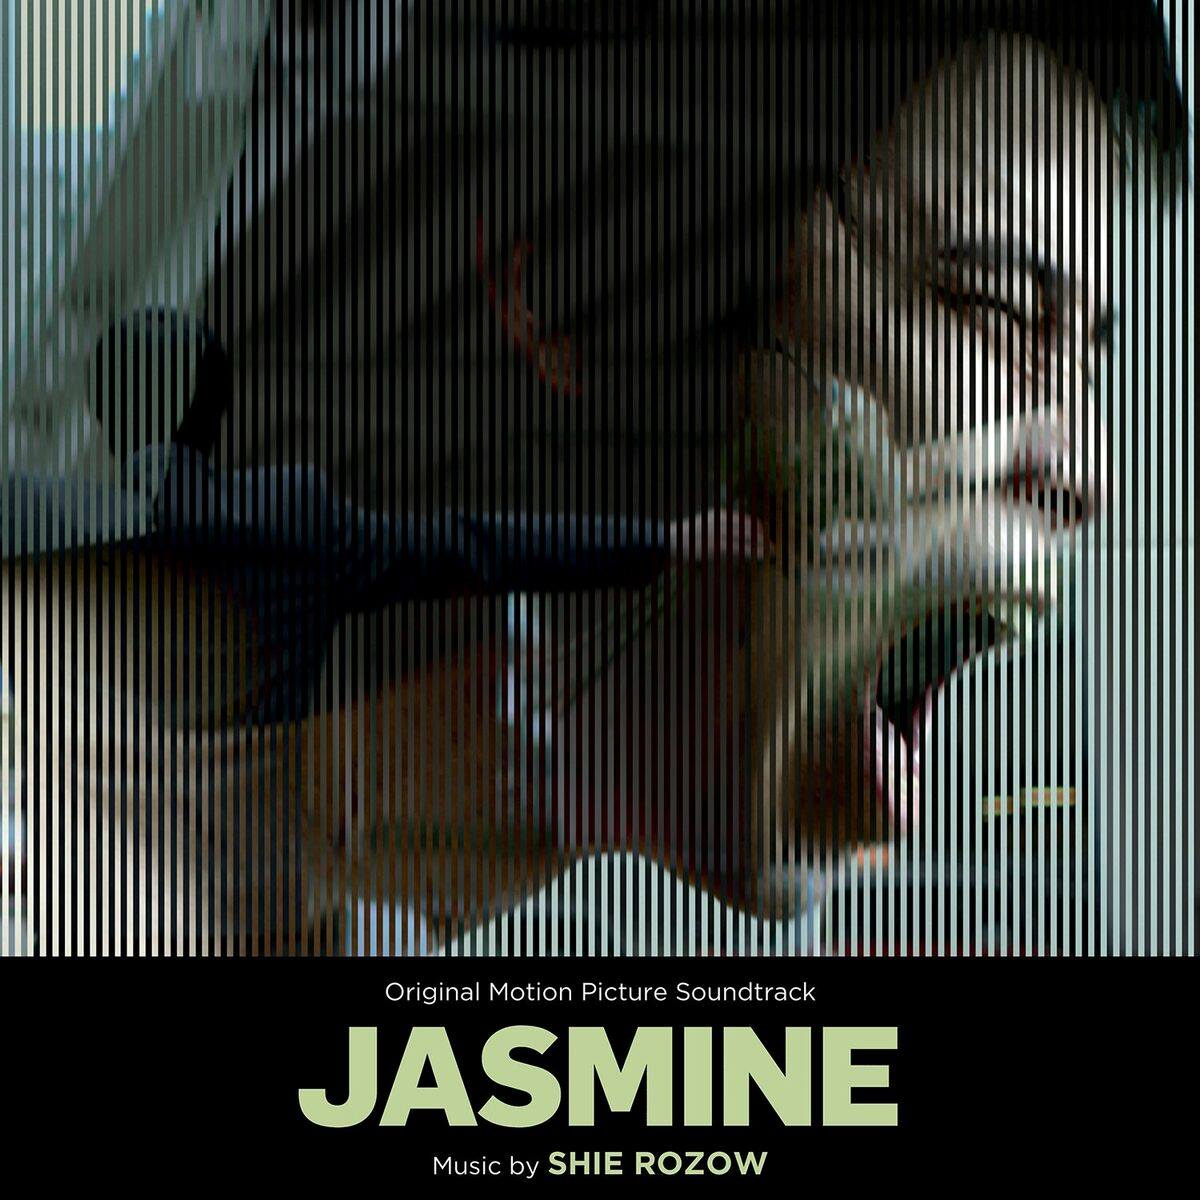 Jasmine Original Motion Picture Soundtrack